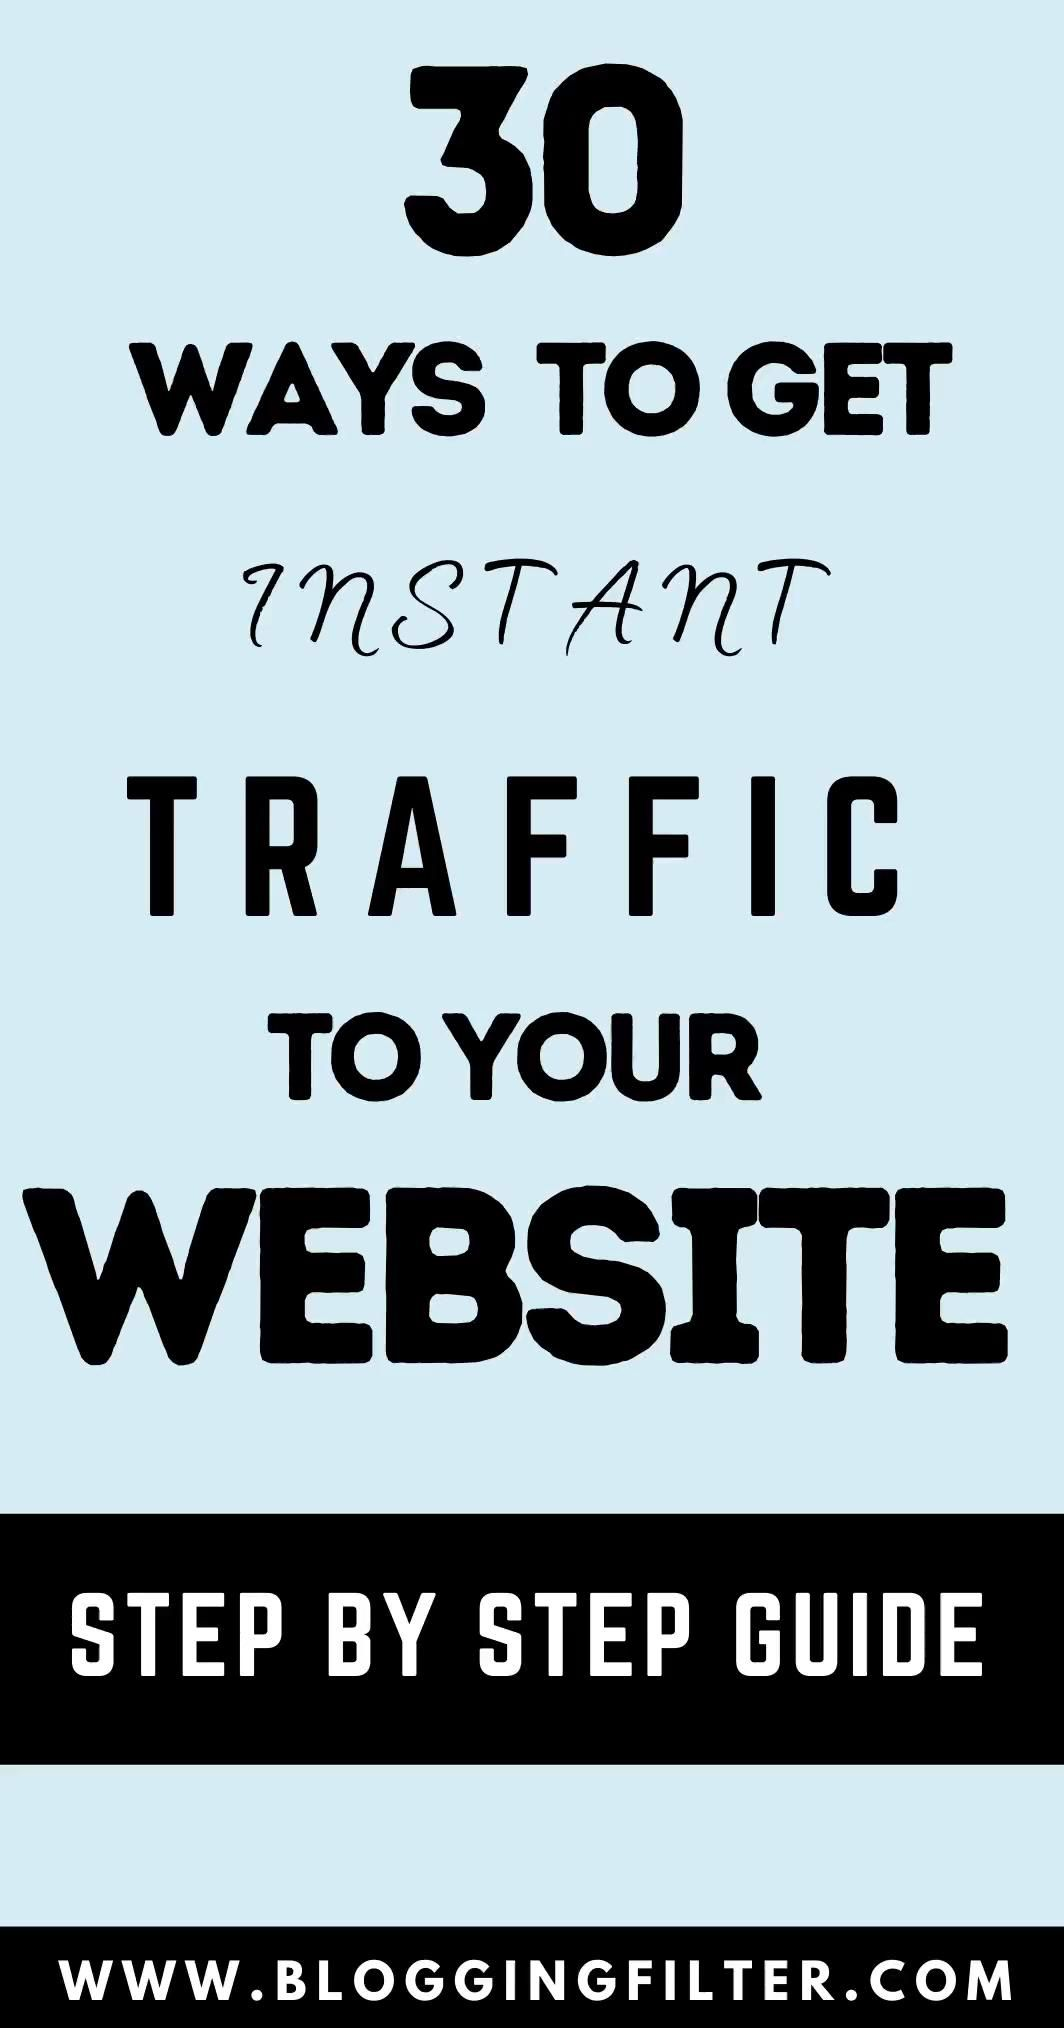 Advertising-Infographics-30-Ways-to-Get-Instant-Traffic-to Advertising Infographics : 30 Ways to Get Instant Traffic to Your Website